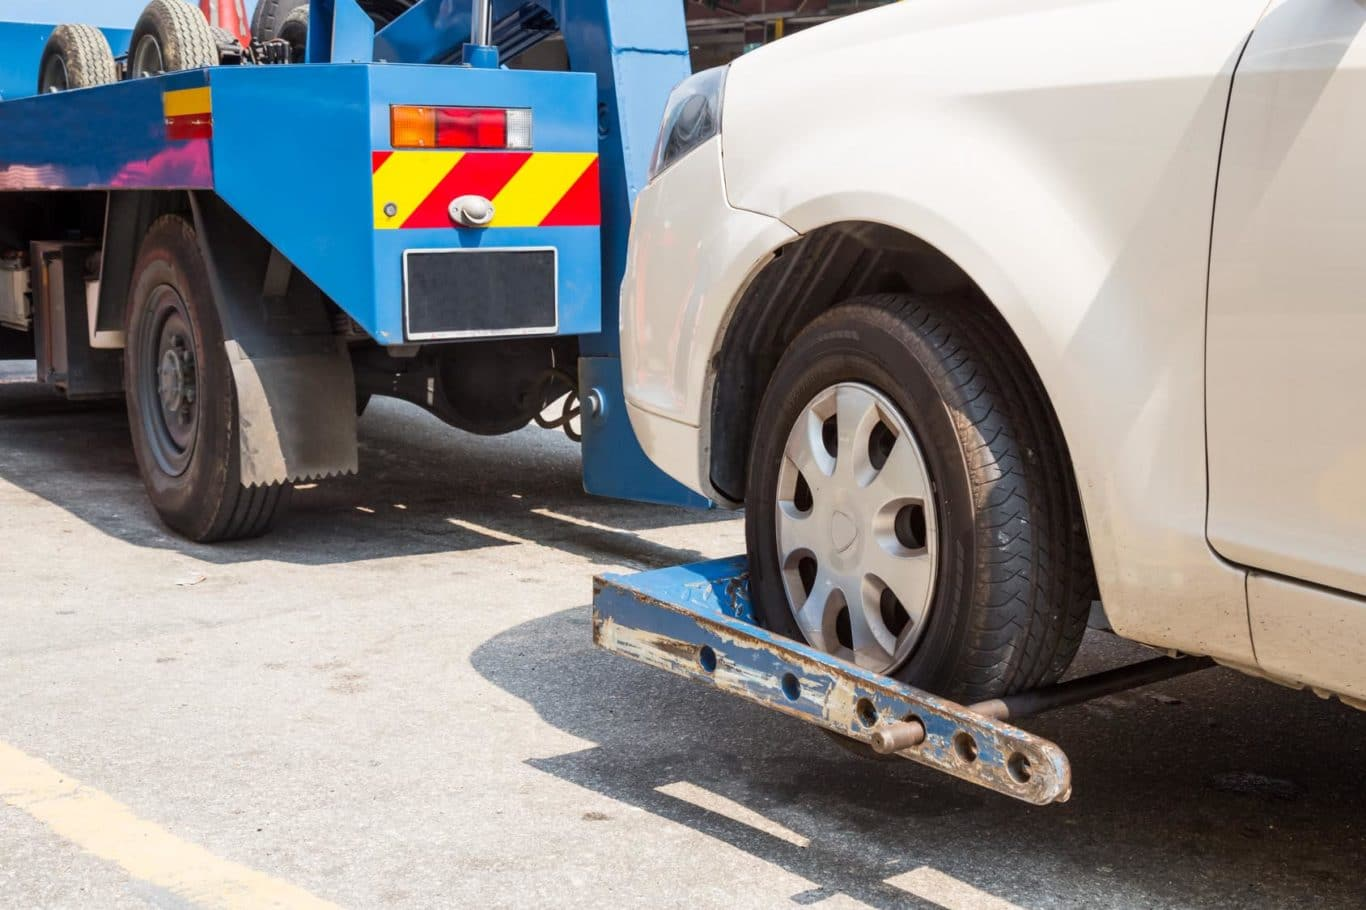 Castleknock expert Car Towing services